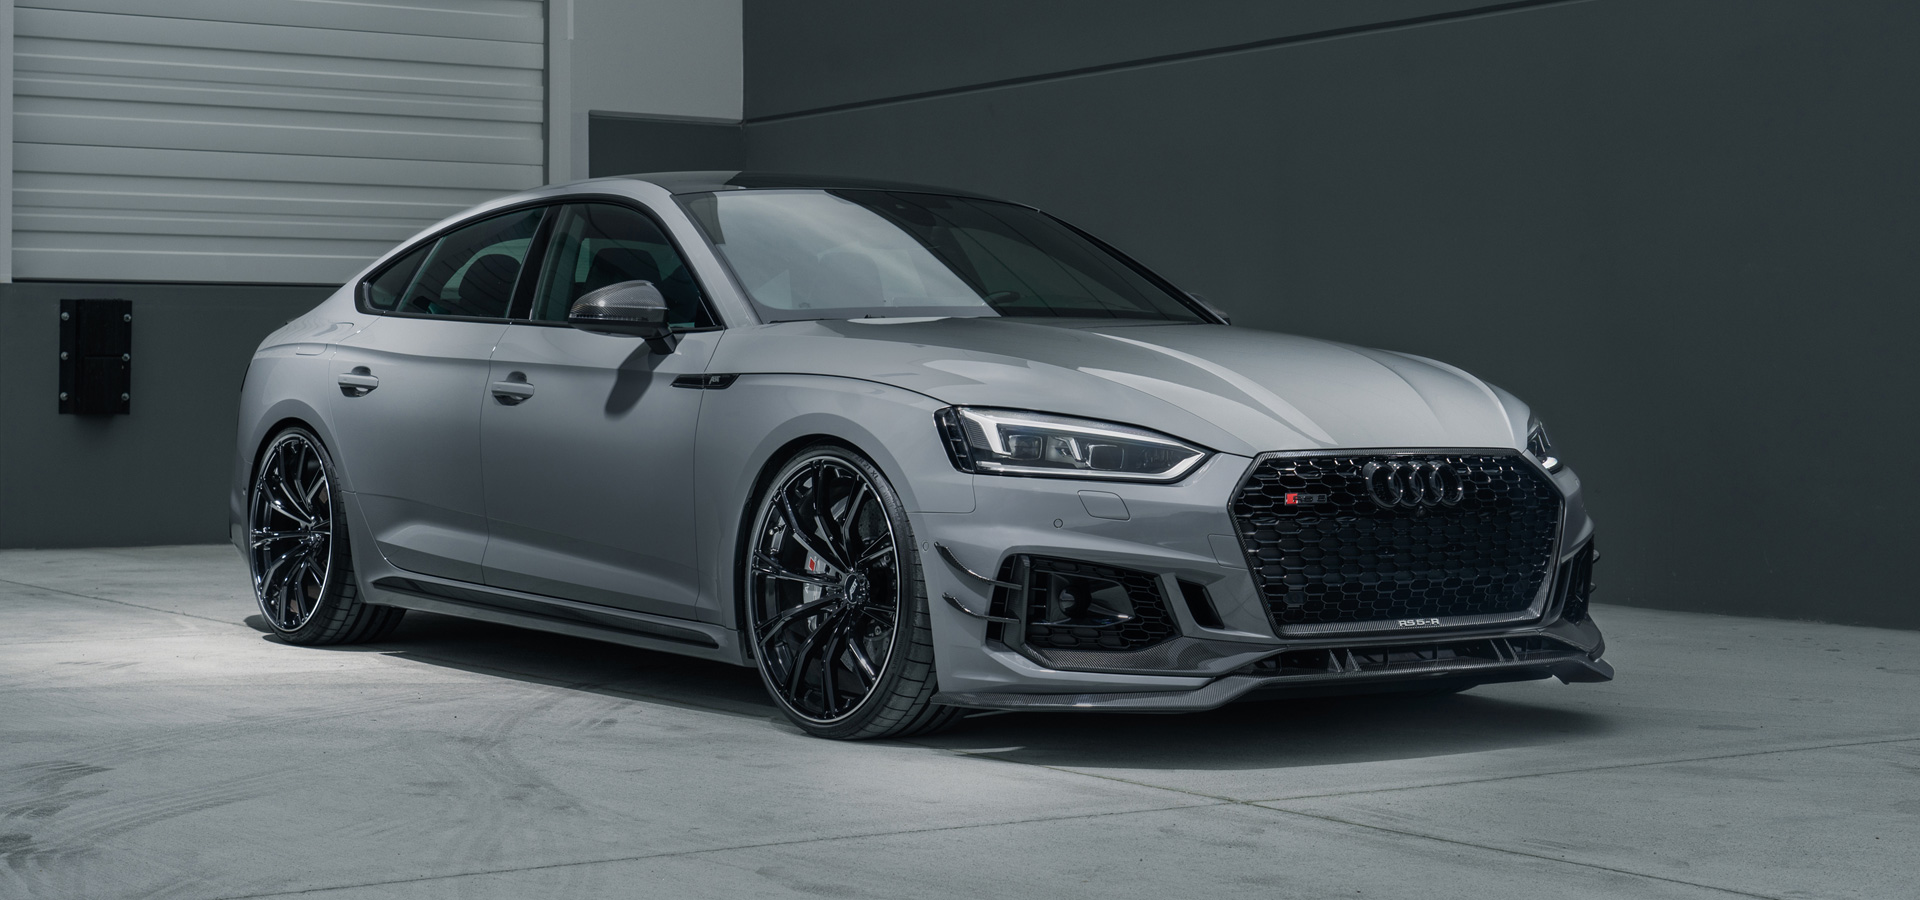 Tuning - ABT Sportsline